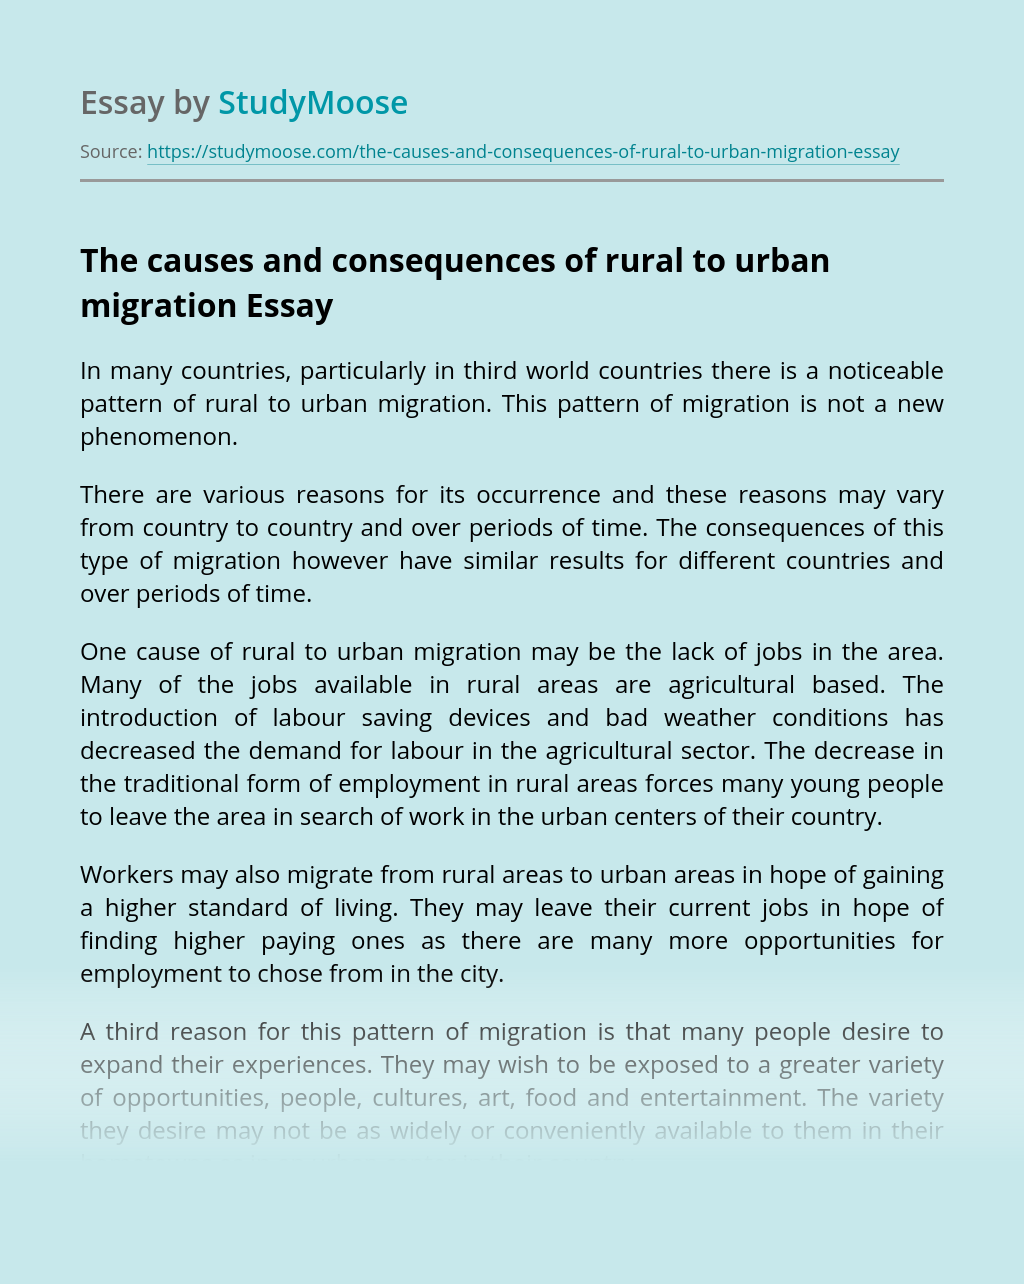 The causes and consequences of rural to urban migration